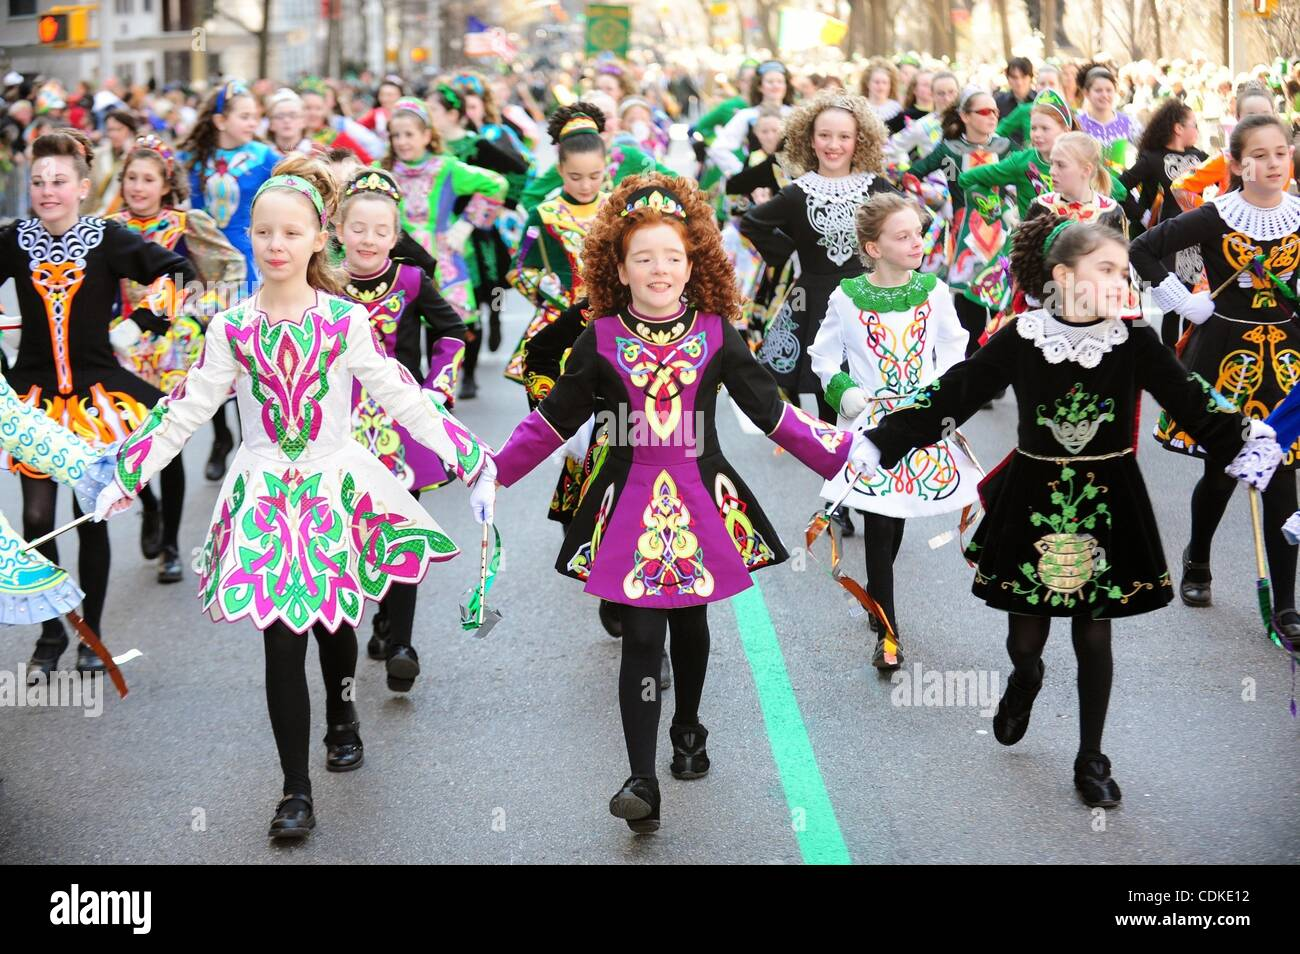 Mar. 17, 2011 - Manhattan, New York, U.S. - Dancers perofm during the 250th annual St. Patrick's Day Parade - Stock Image